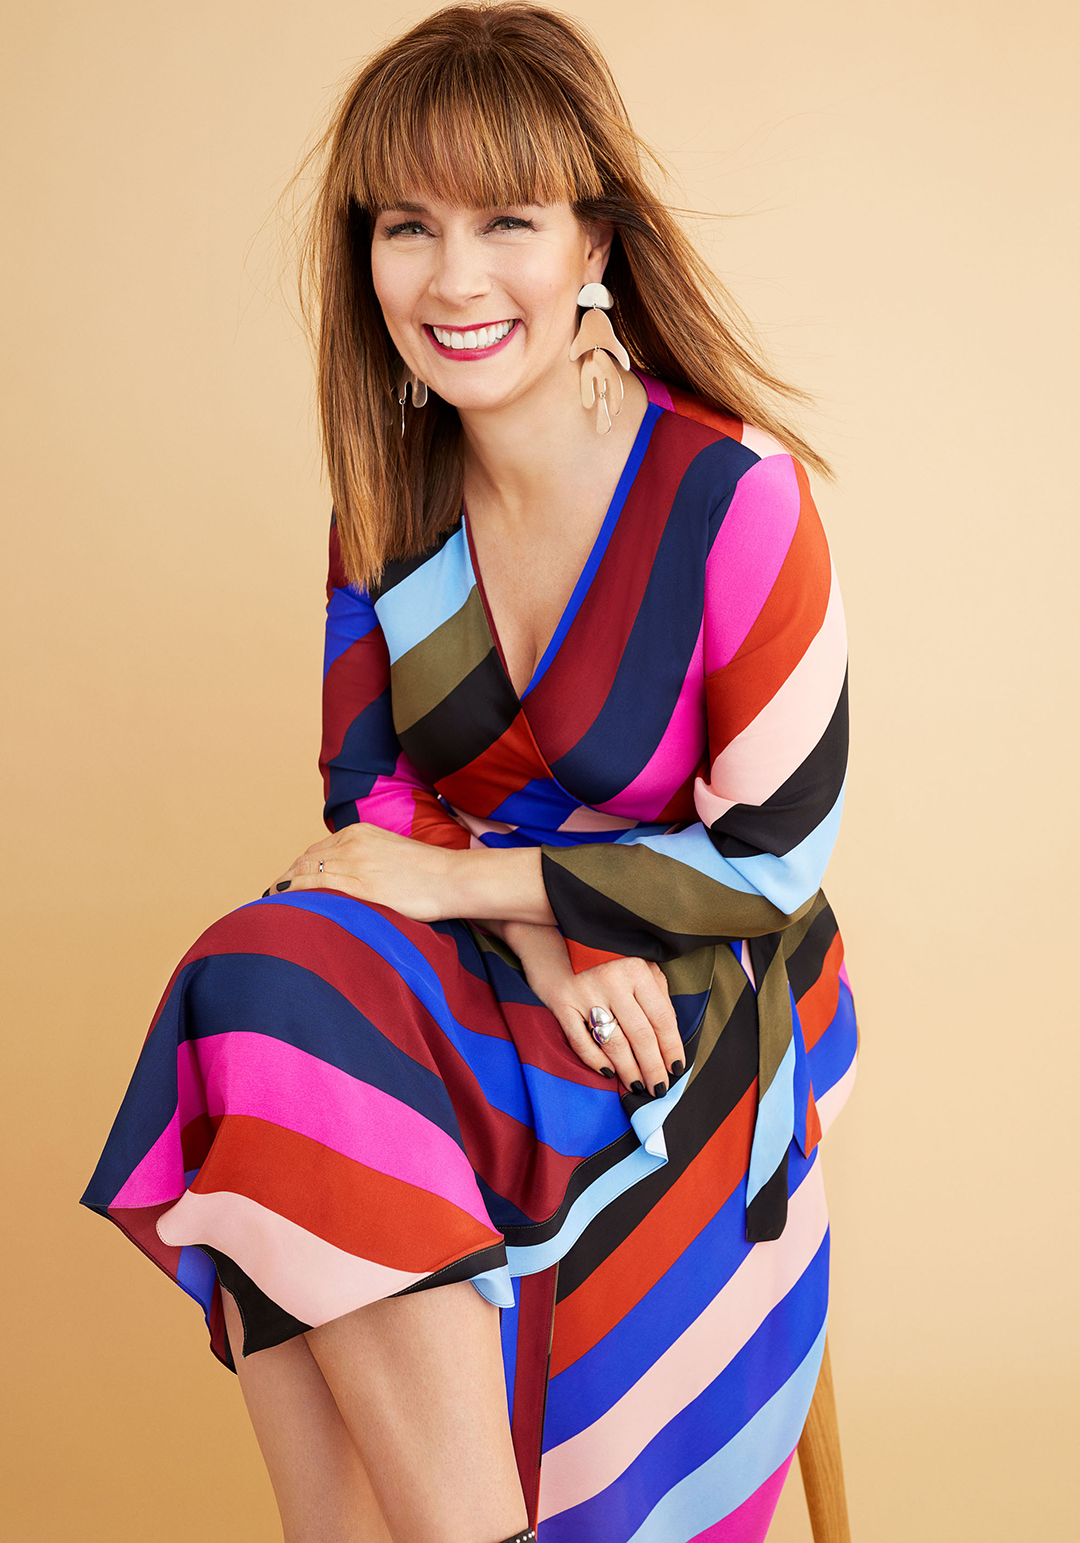 woman smiling wearing colorful dress